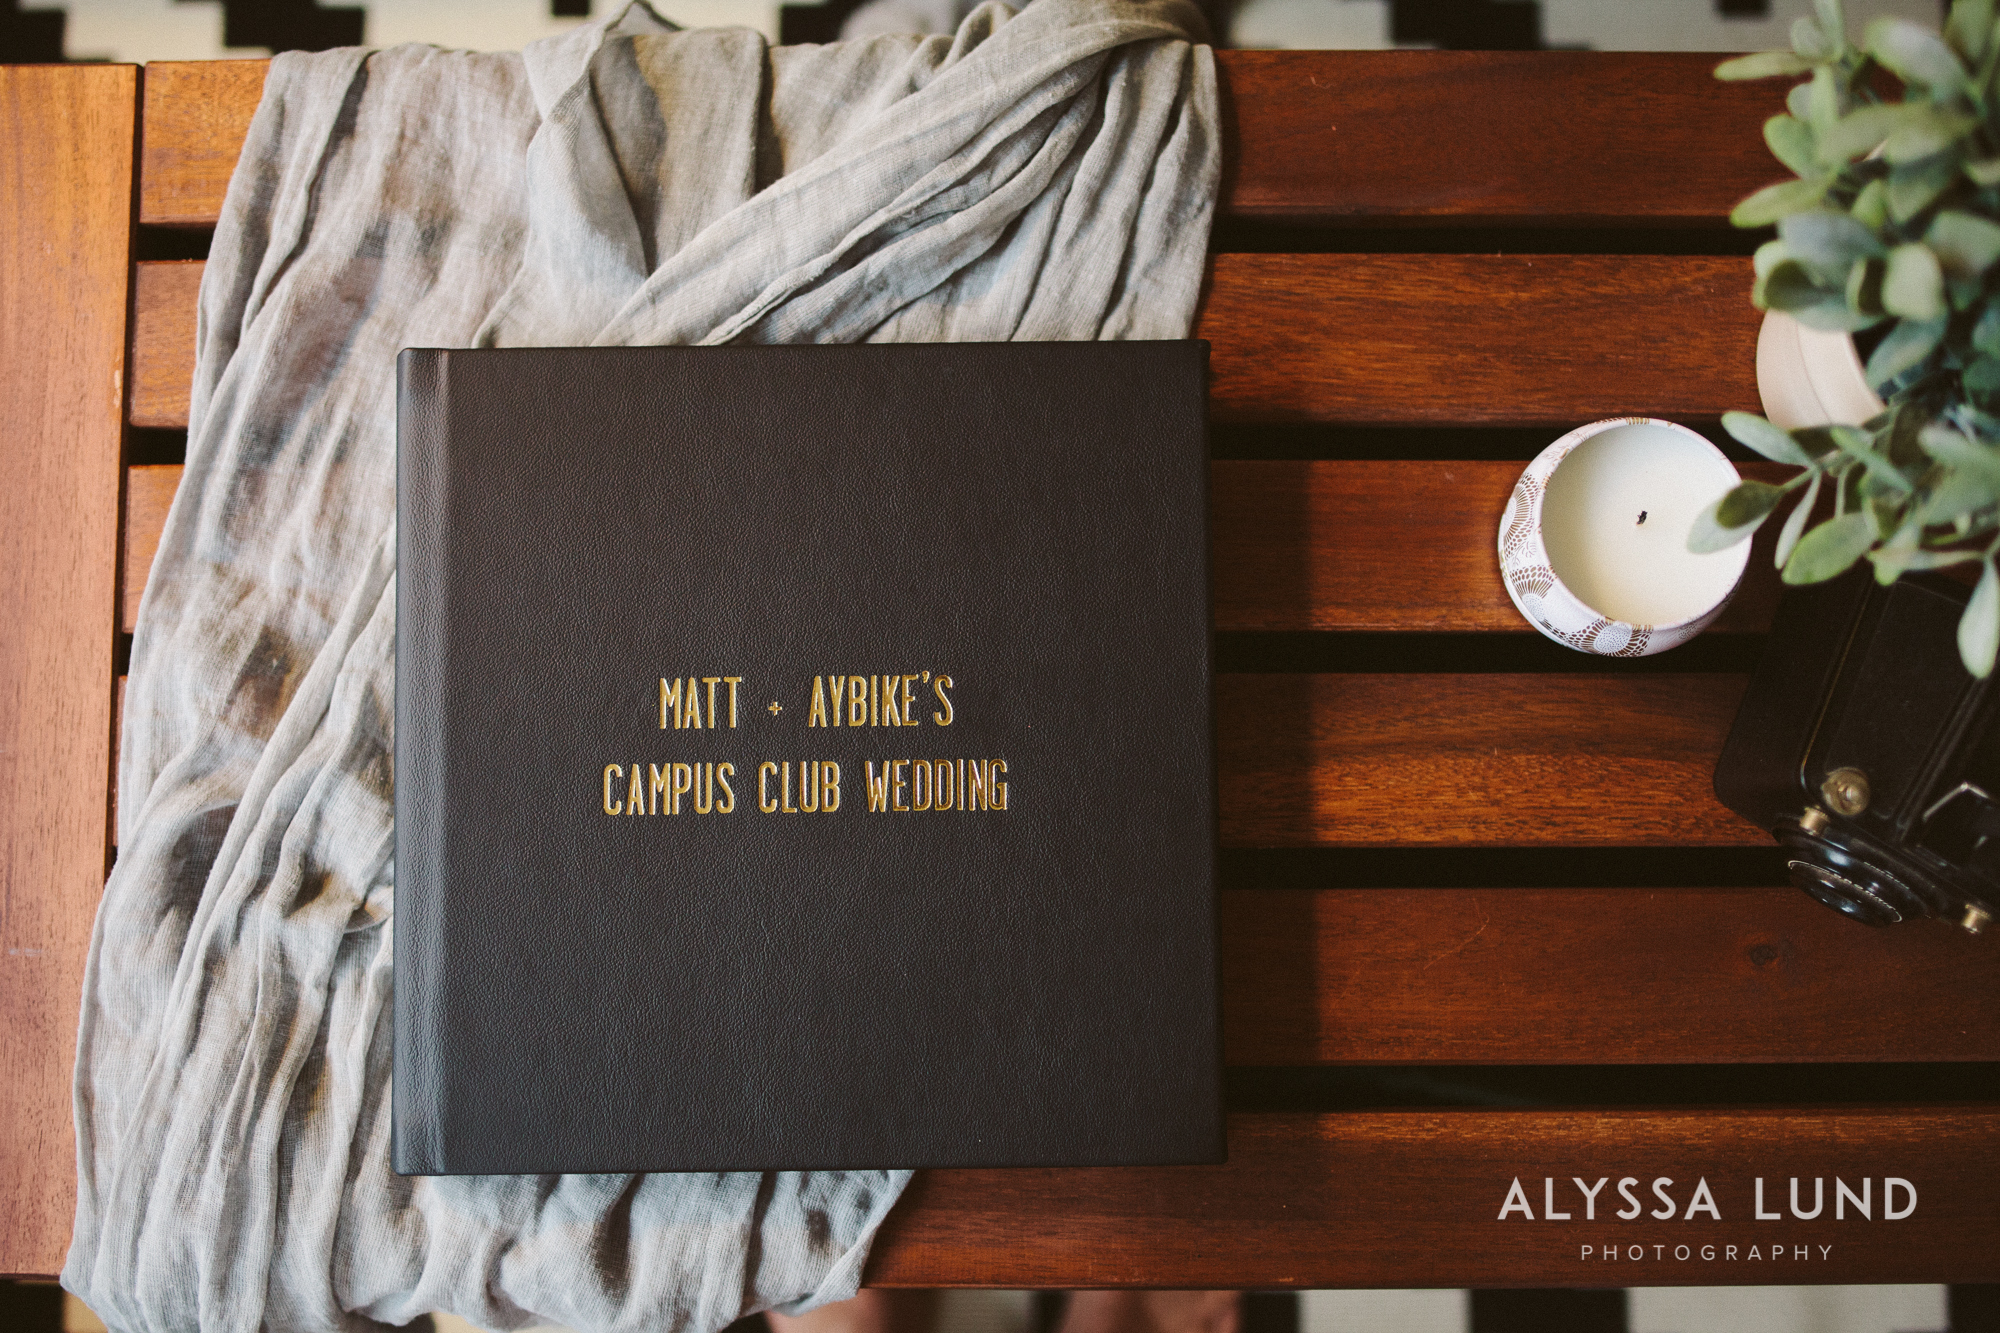 A leather printed wedding album with gold foil